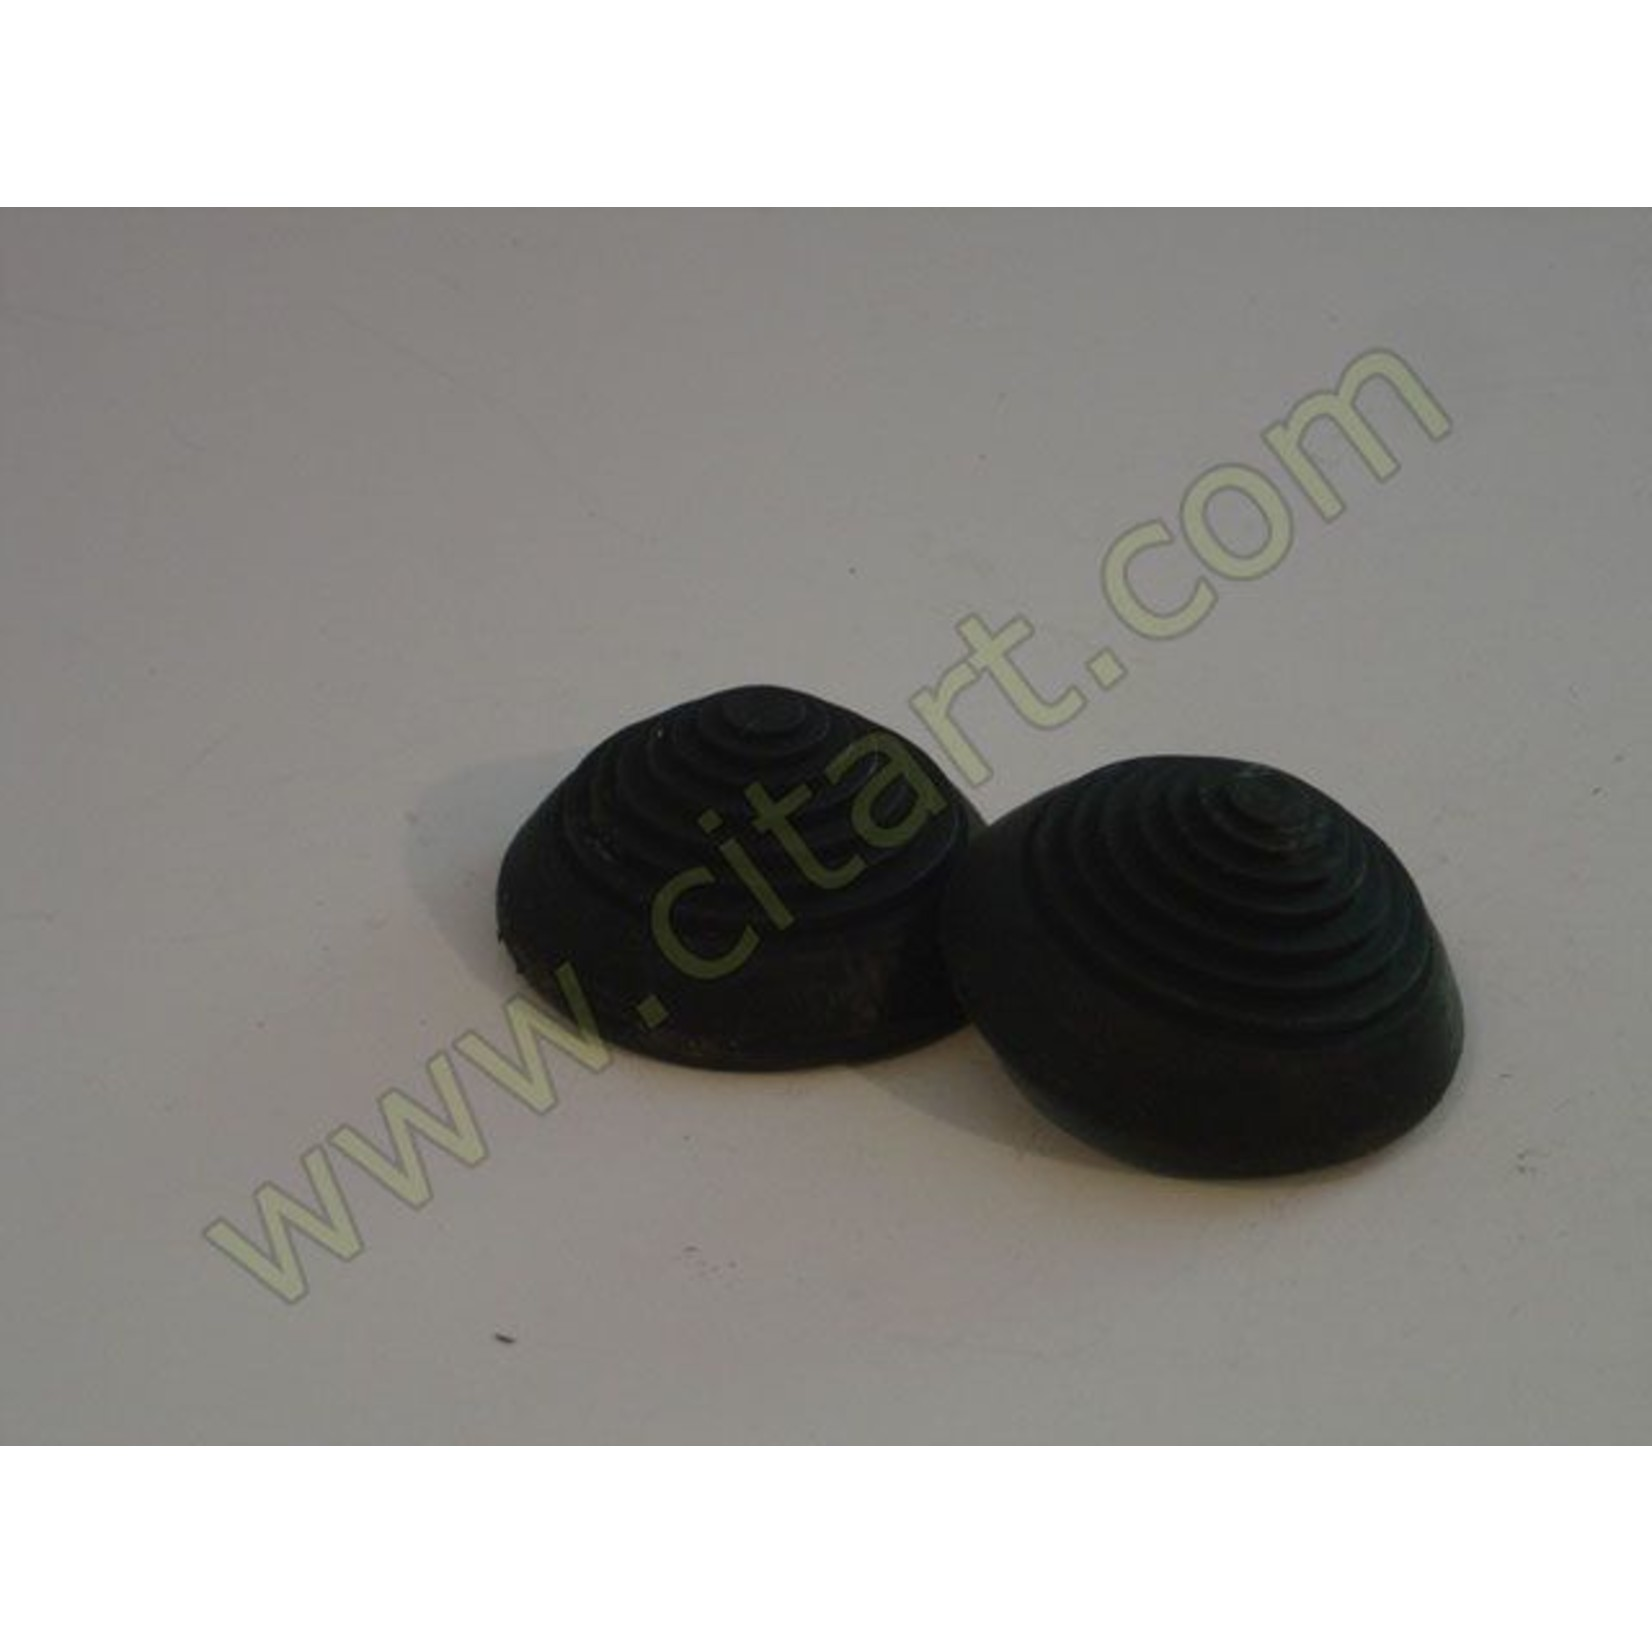 Rubber pad brake pedal round 61- Nr Org: DS45397A